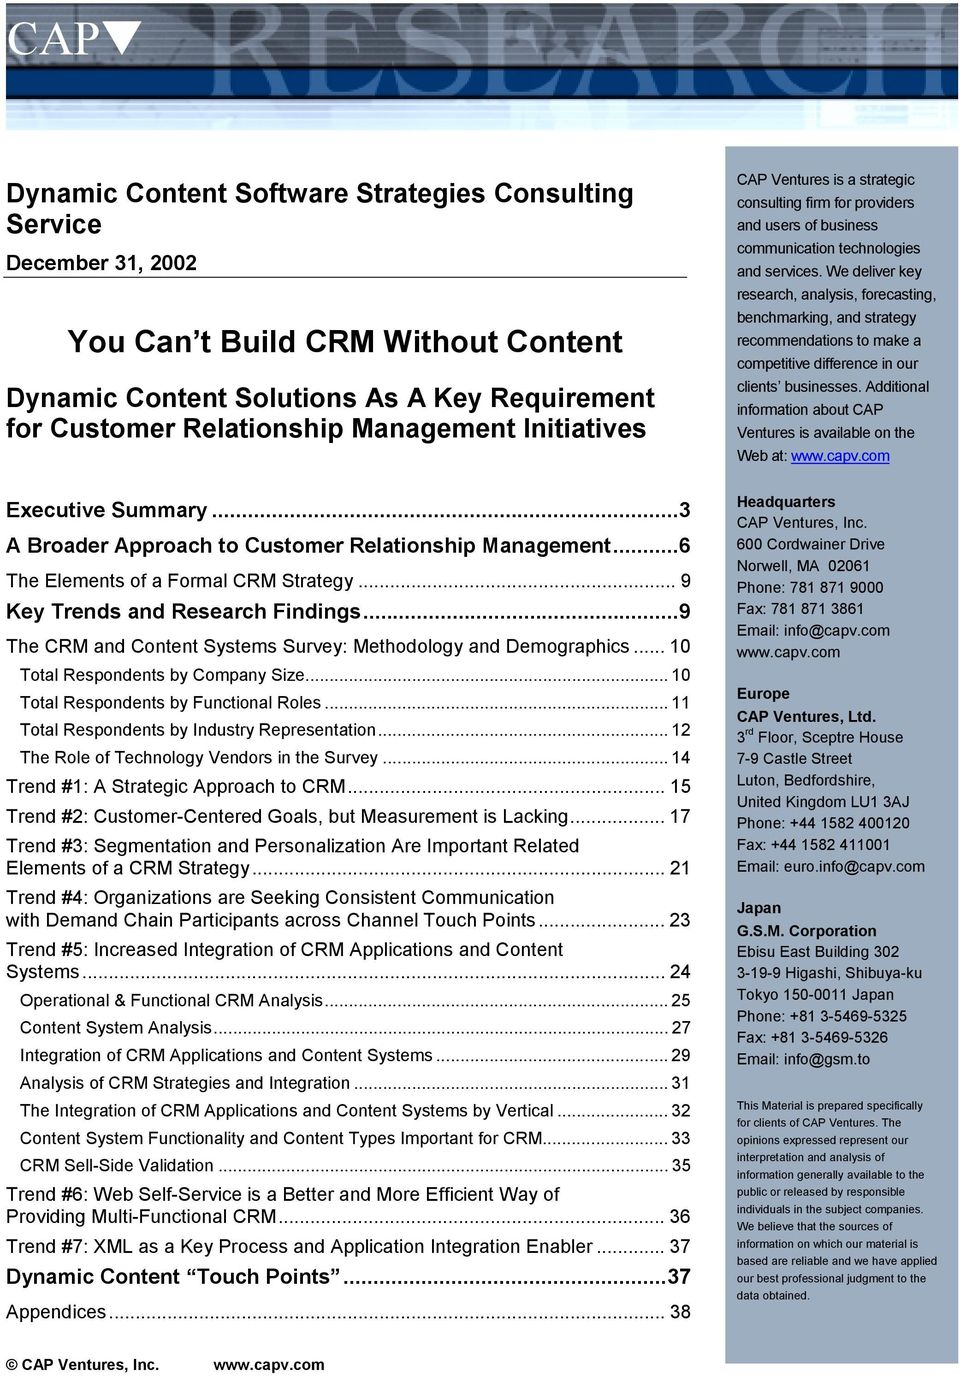 ..9 The CRM and Content Systems Survey: Methodology and Demographics... 10 Total Respondents by Company Size... 10 Total Respondents by Functional Roles.